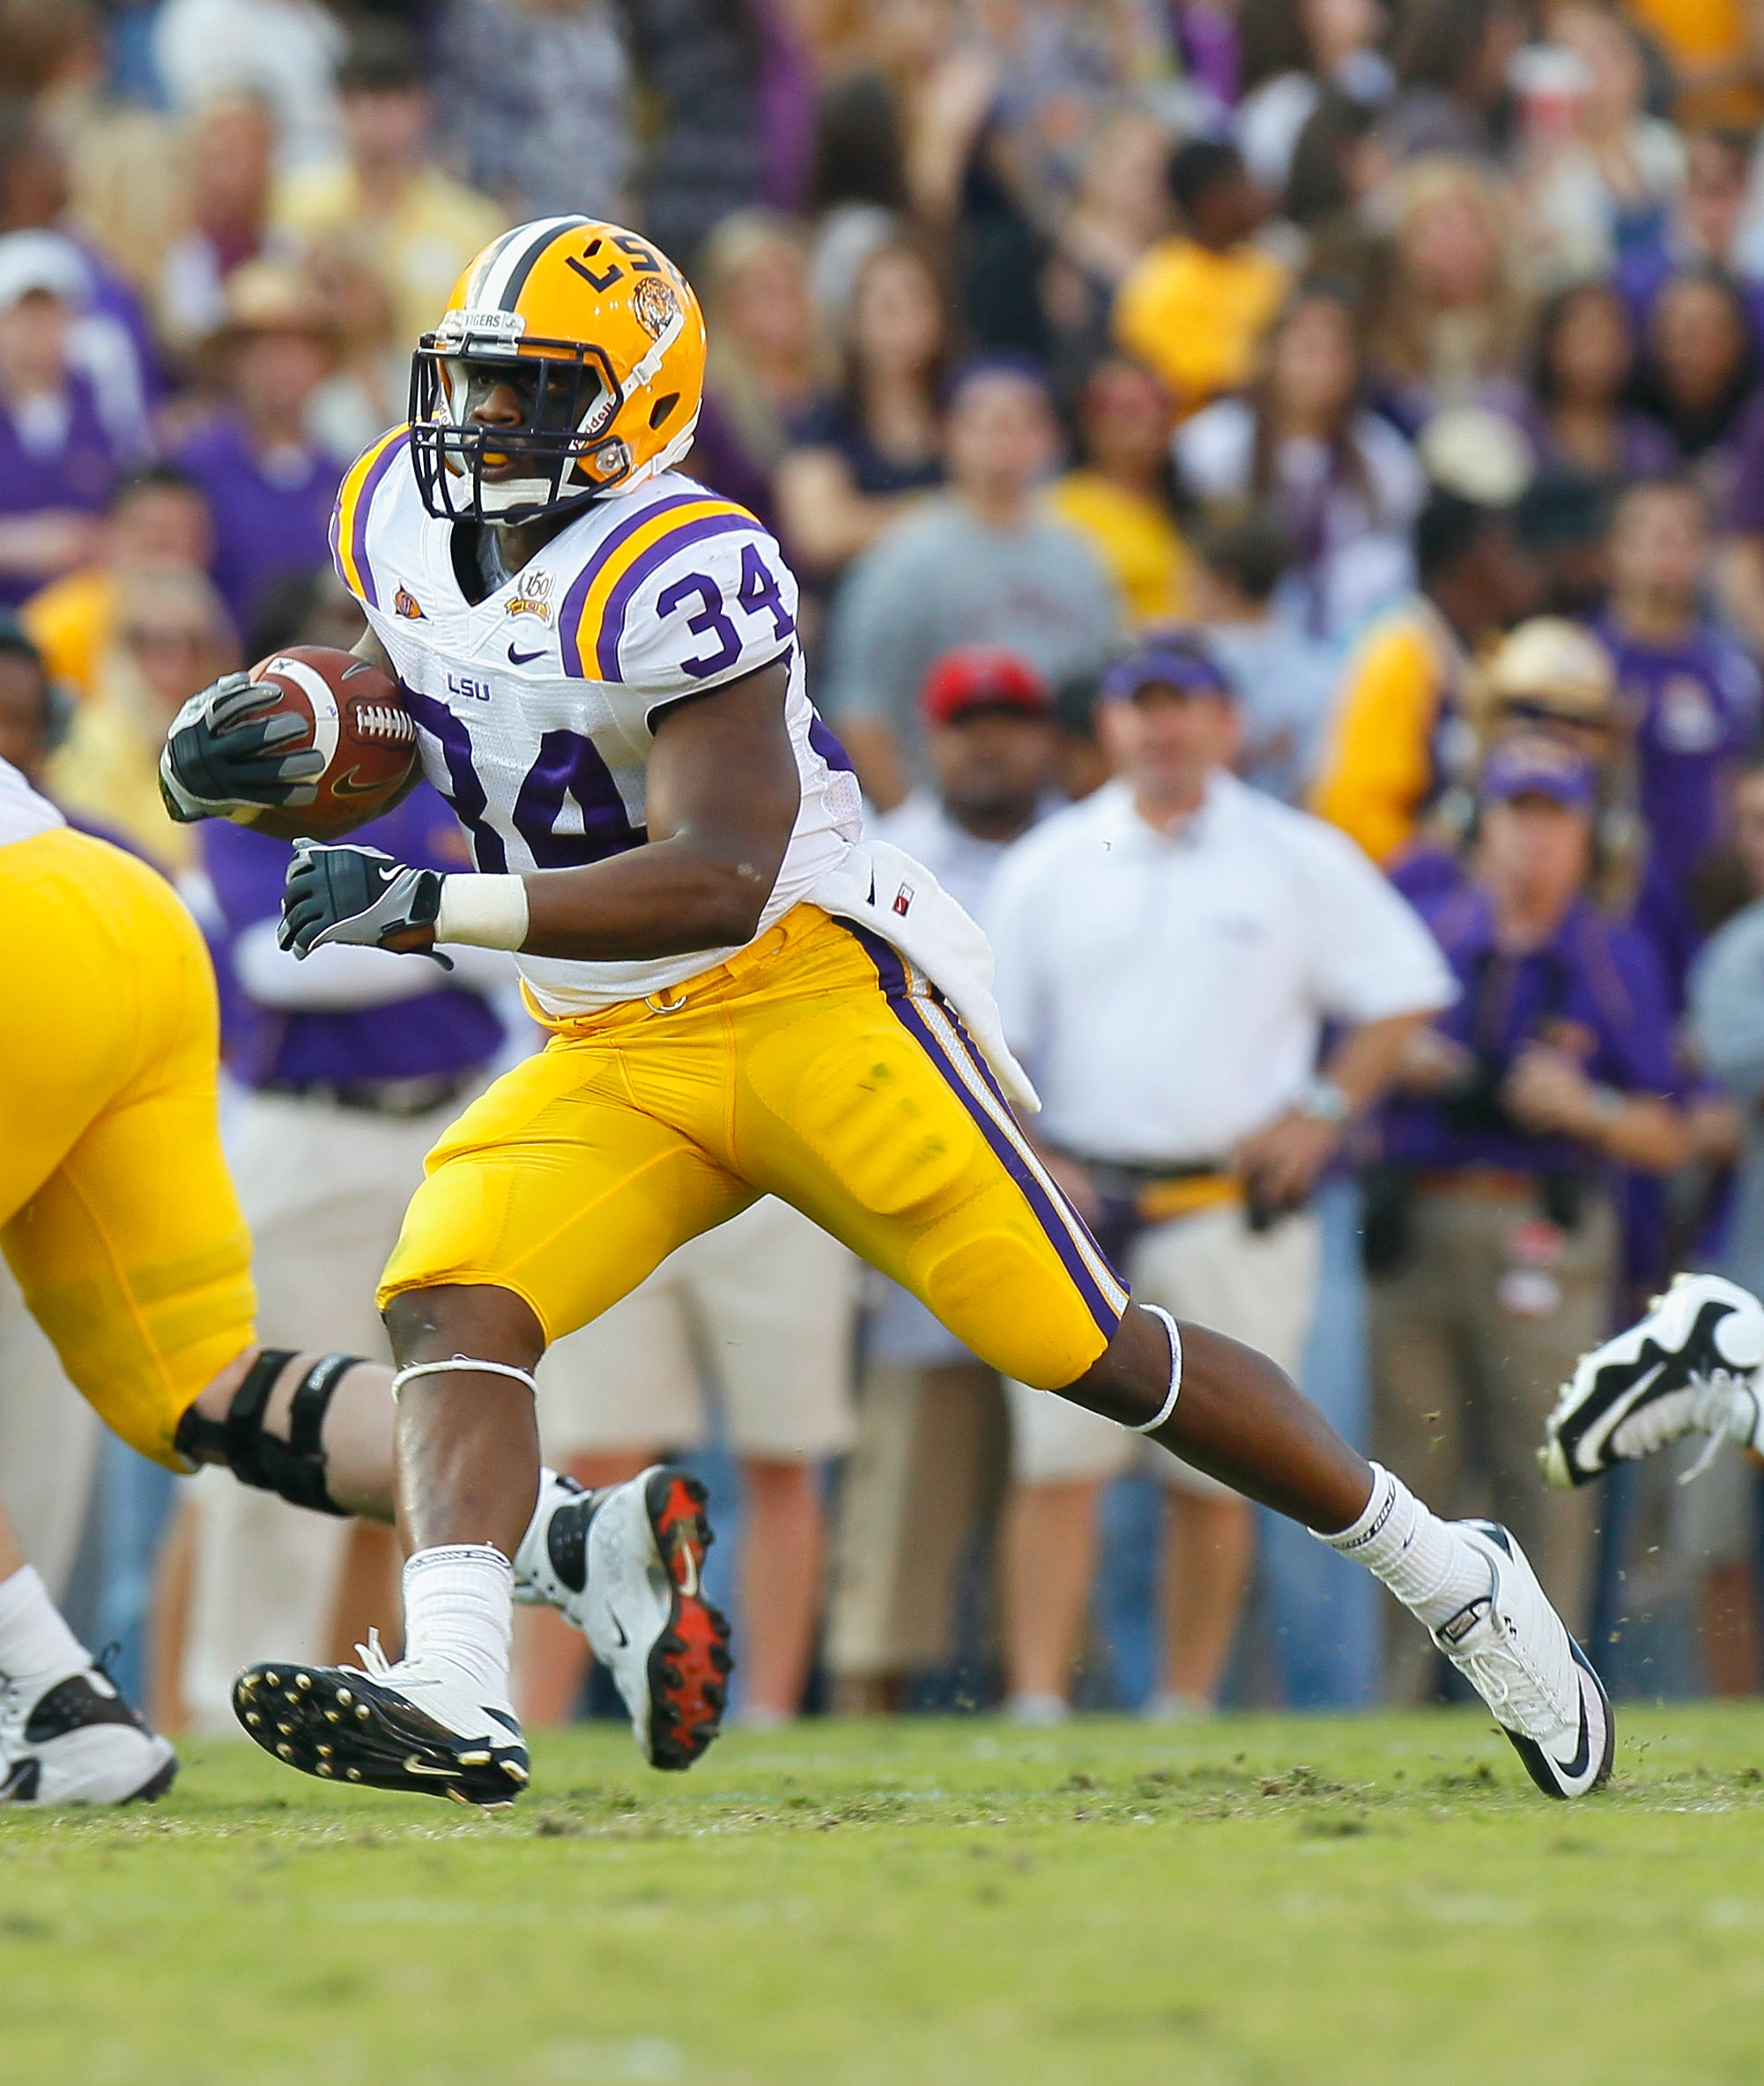 BATON ROUGE, LA - NOVEMBER 20:  Stevan Ridley #34 of the Louisiana State University Tigers against the Ole Miss Rebels at Tiger Stadium on November 20, 2010 in Baton Rouge, Louisiana.  (Photo by Kevin C. Cox/Getty Images)